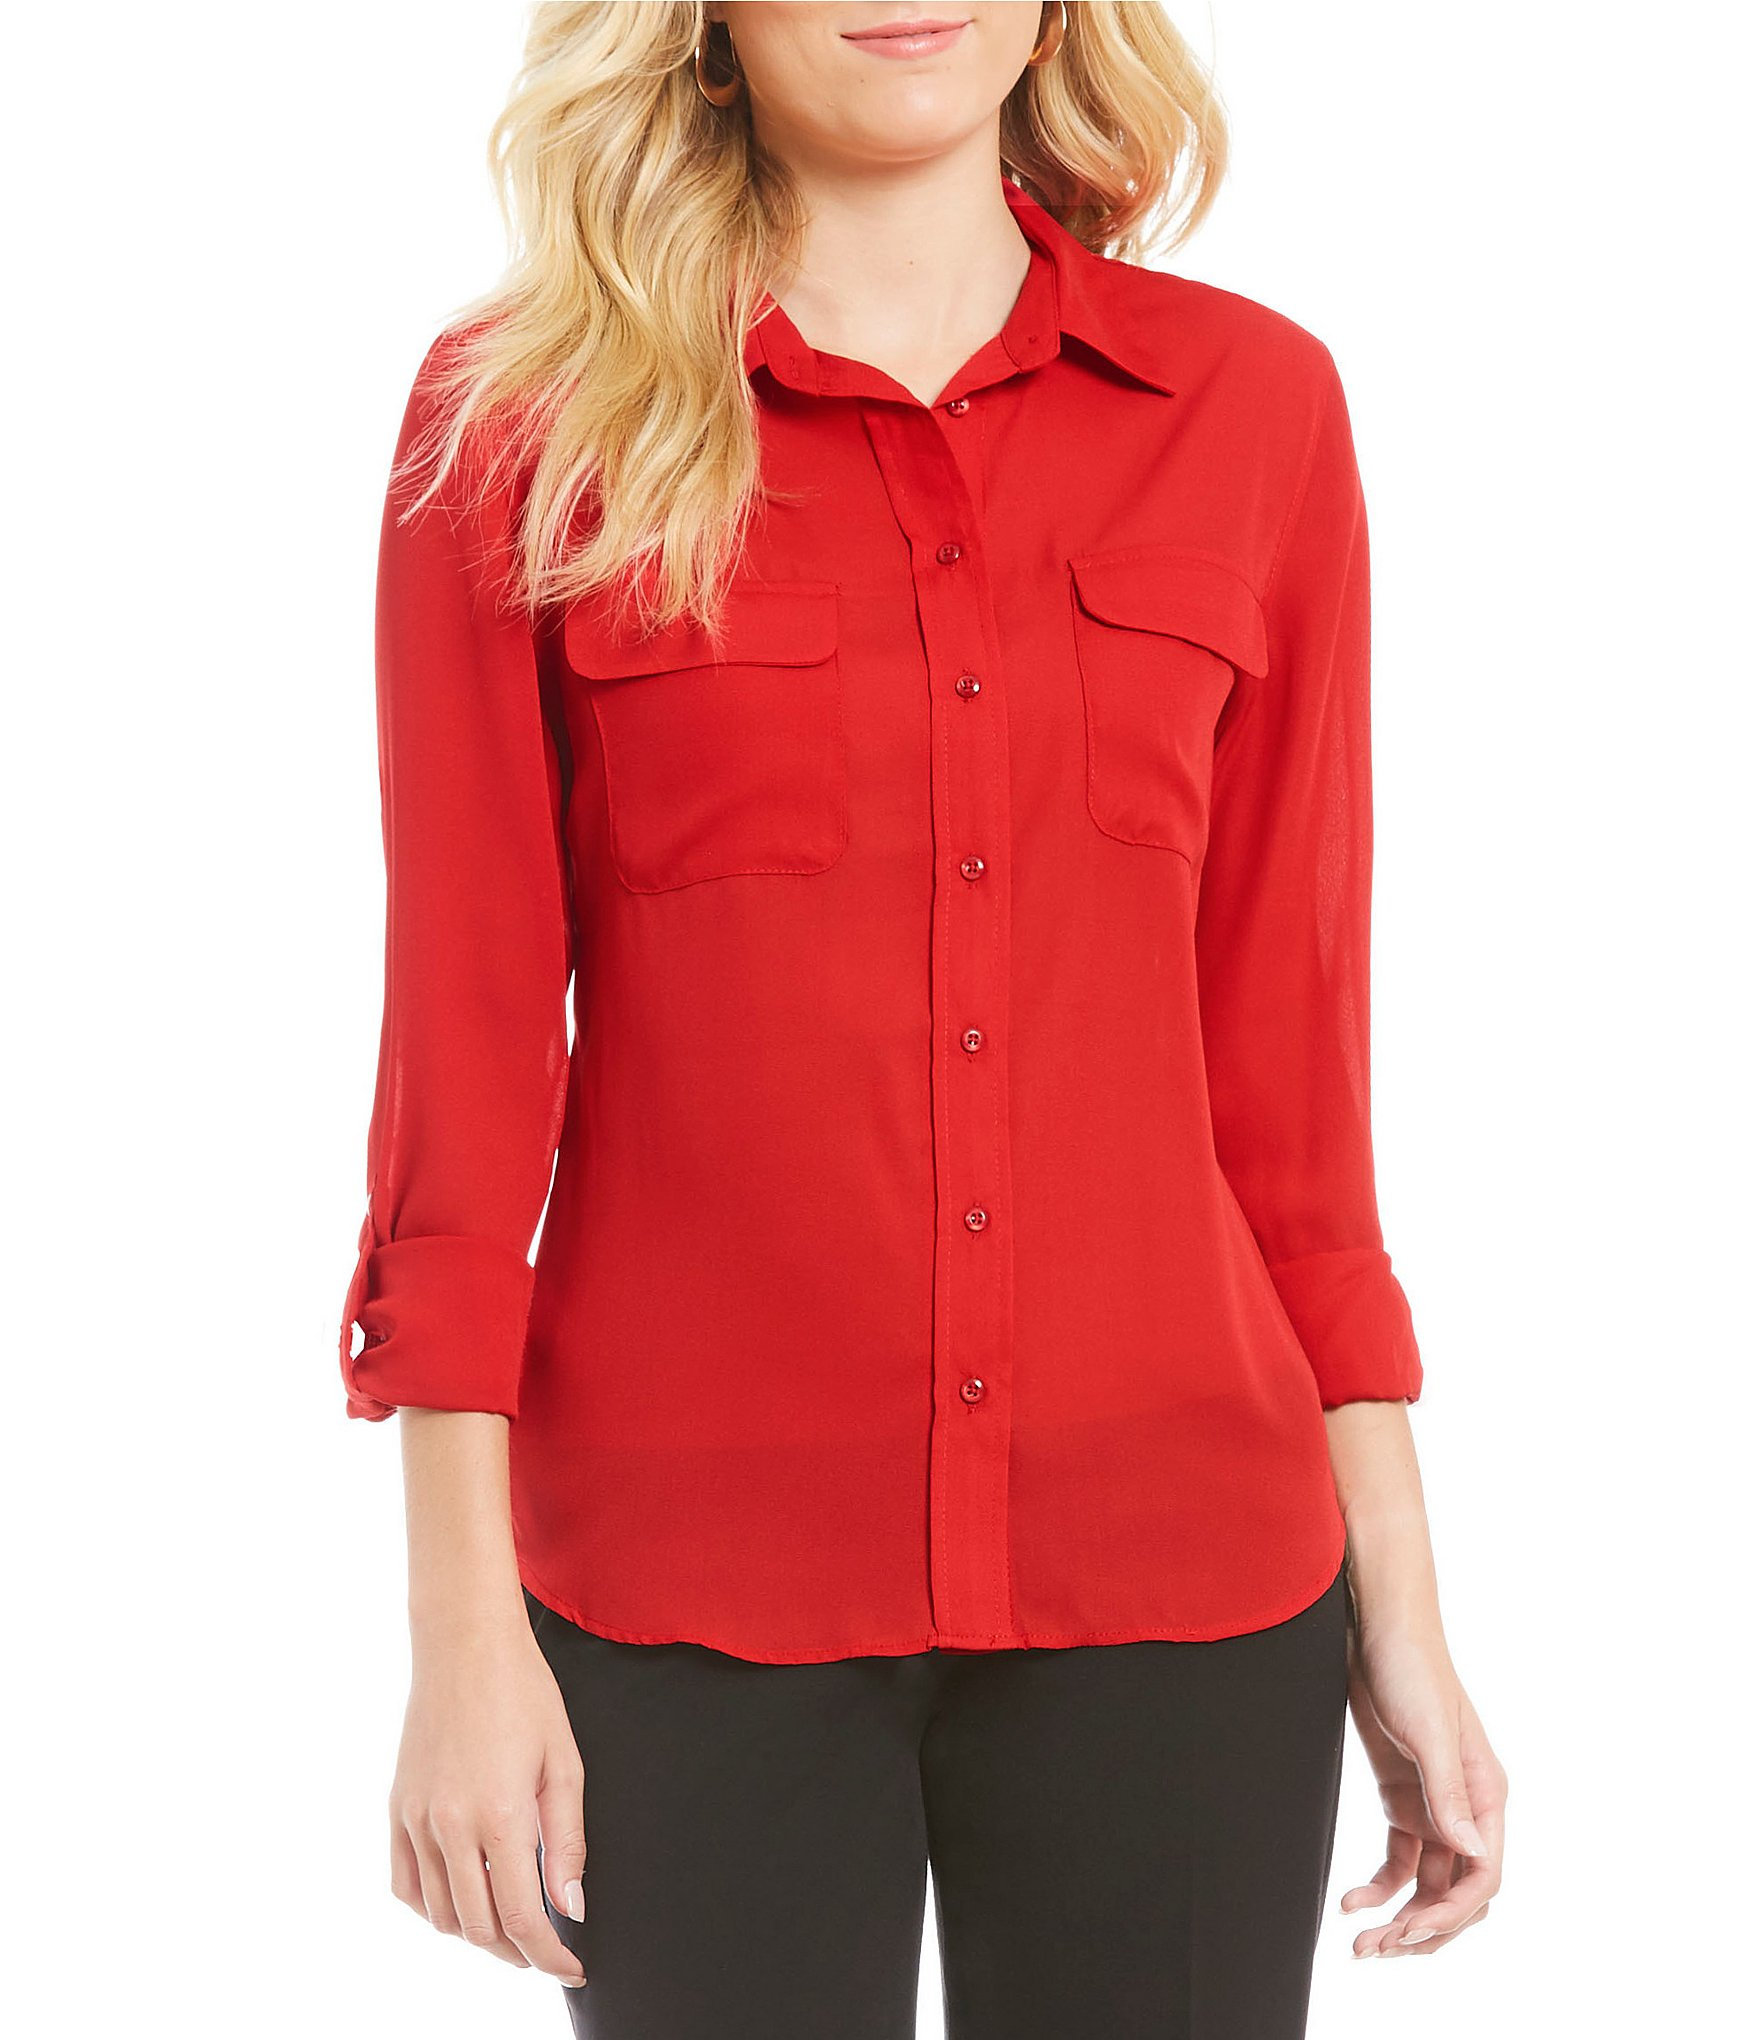 Red Blouse: Ideal For Women